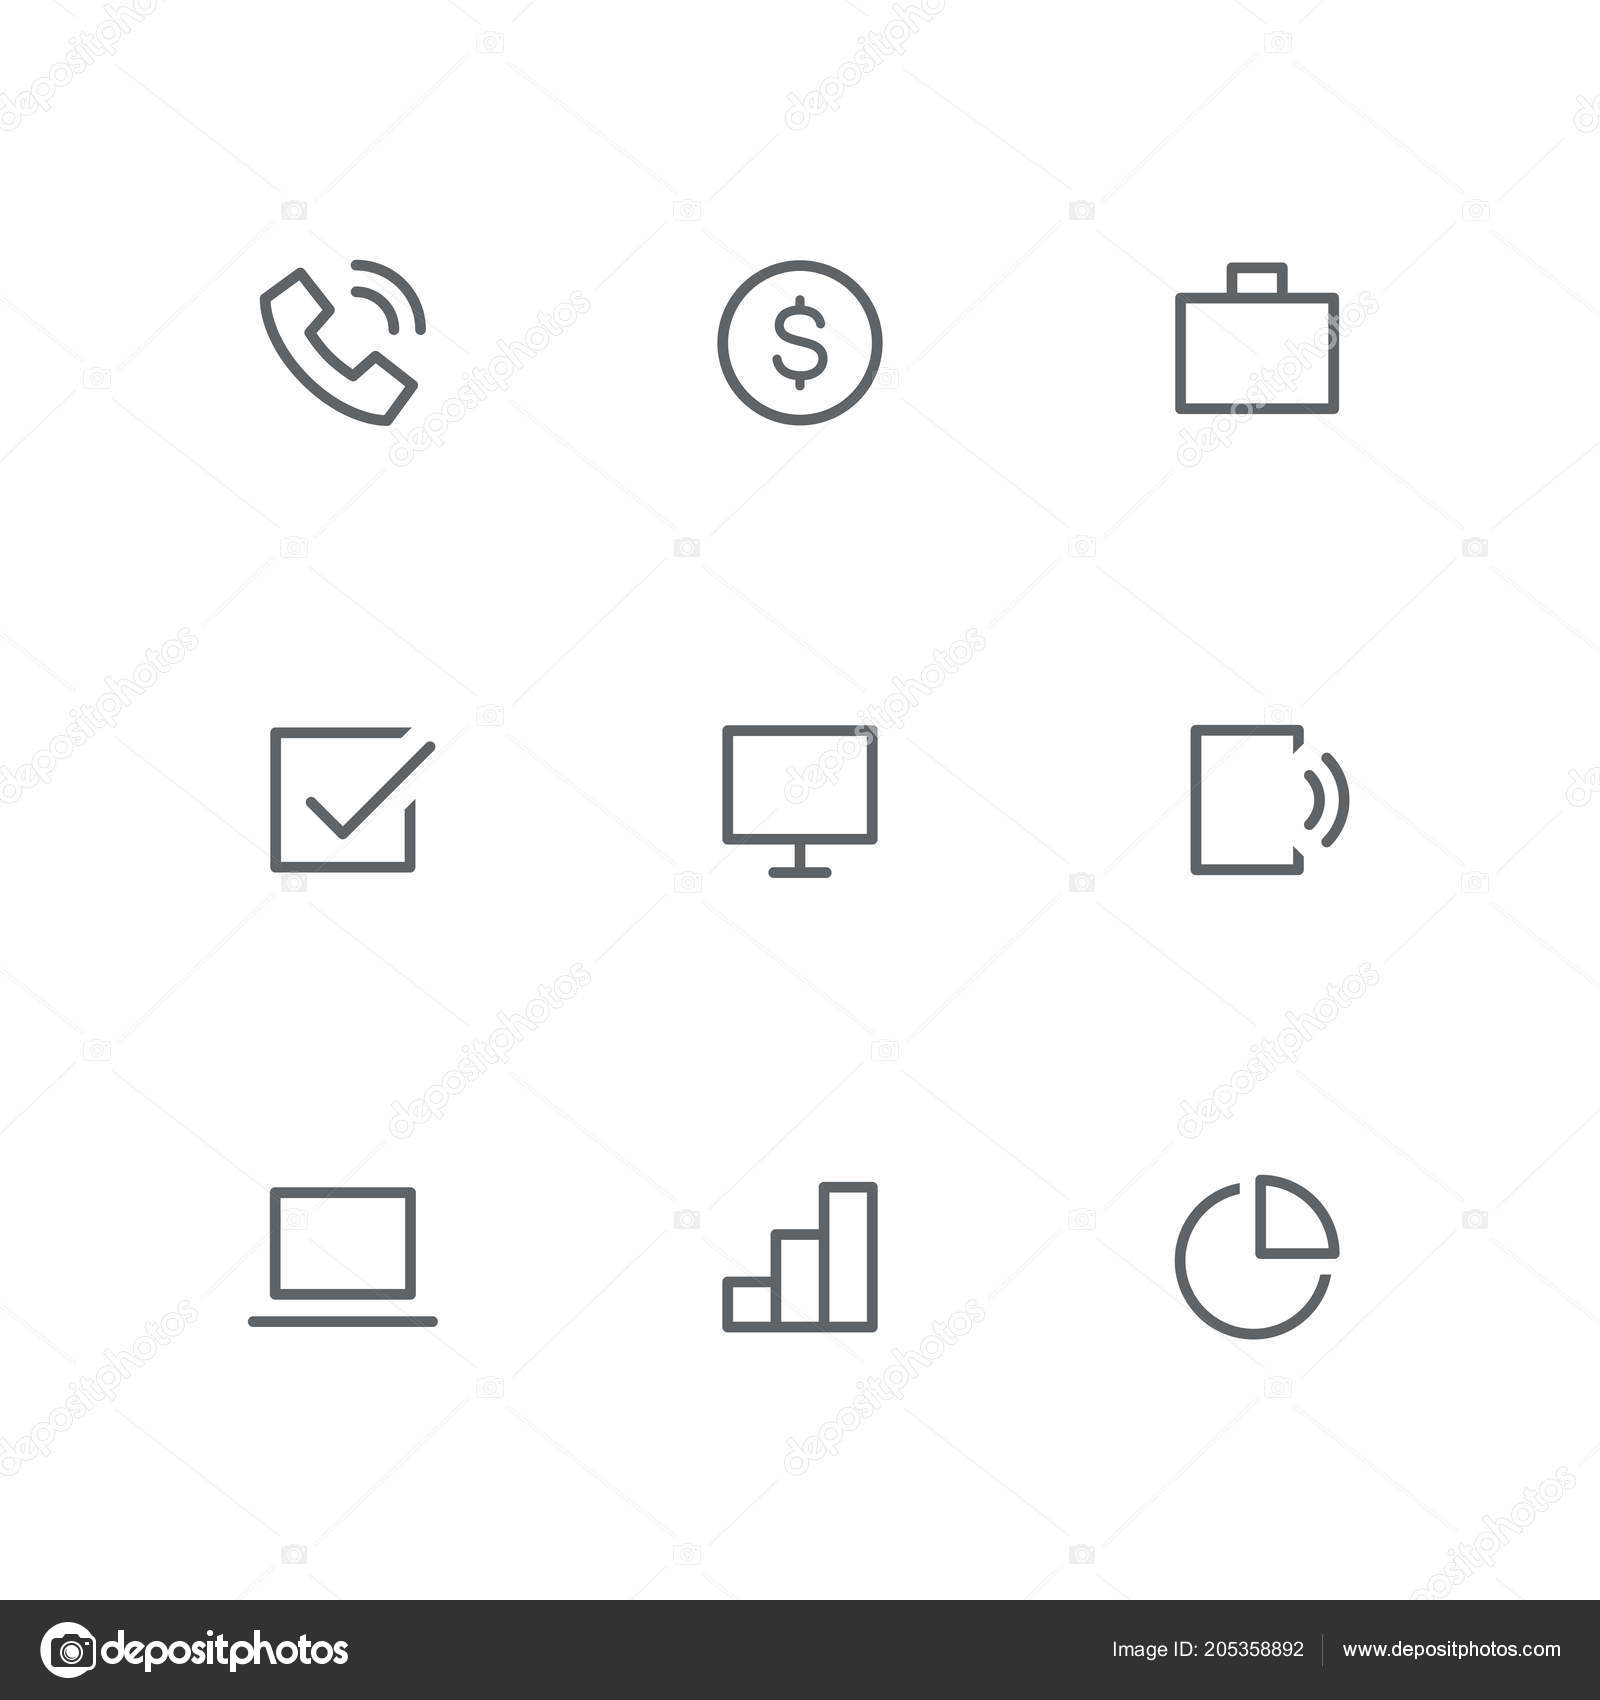 basic outline icon set - telephone, dollar coin, briefcase, check mark,  computer screen, mobile phone, laptop, graph and diagram symbols